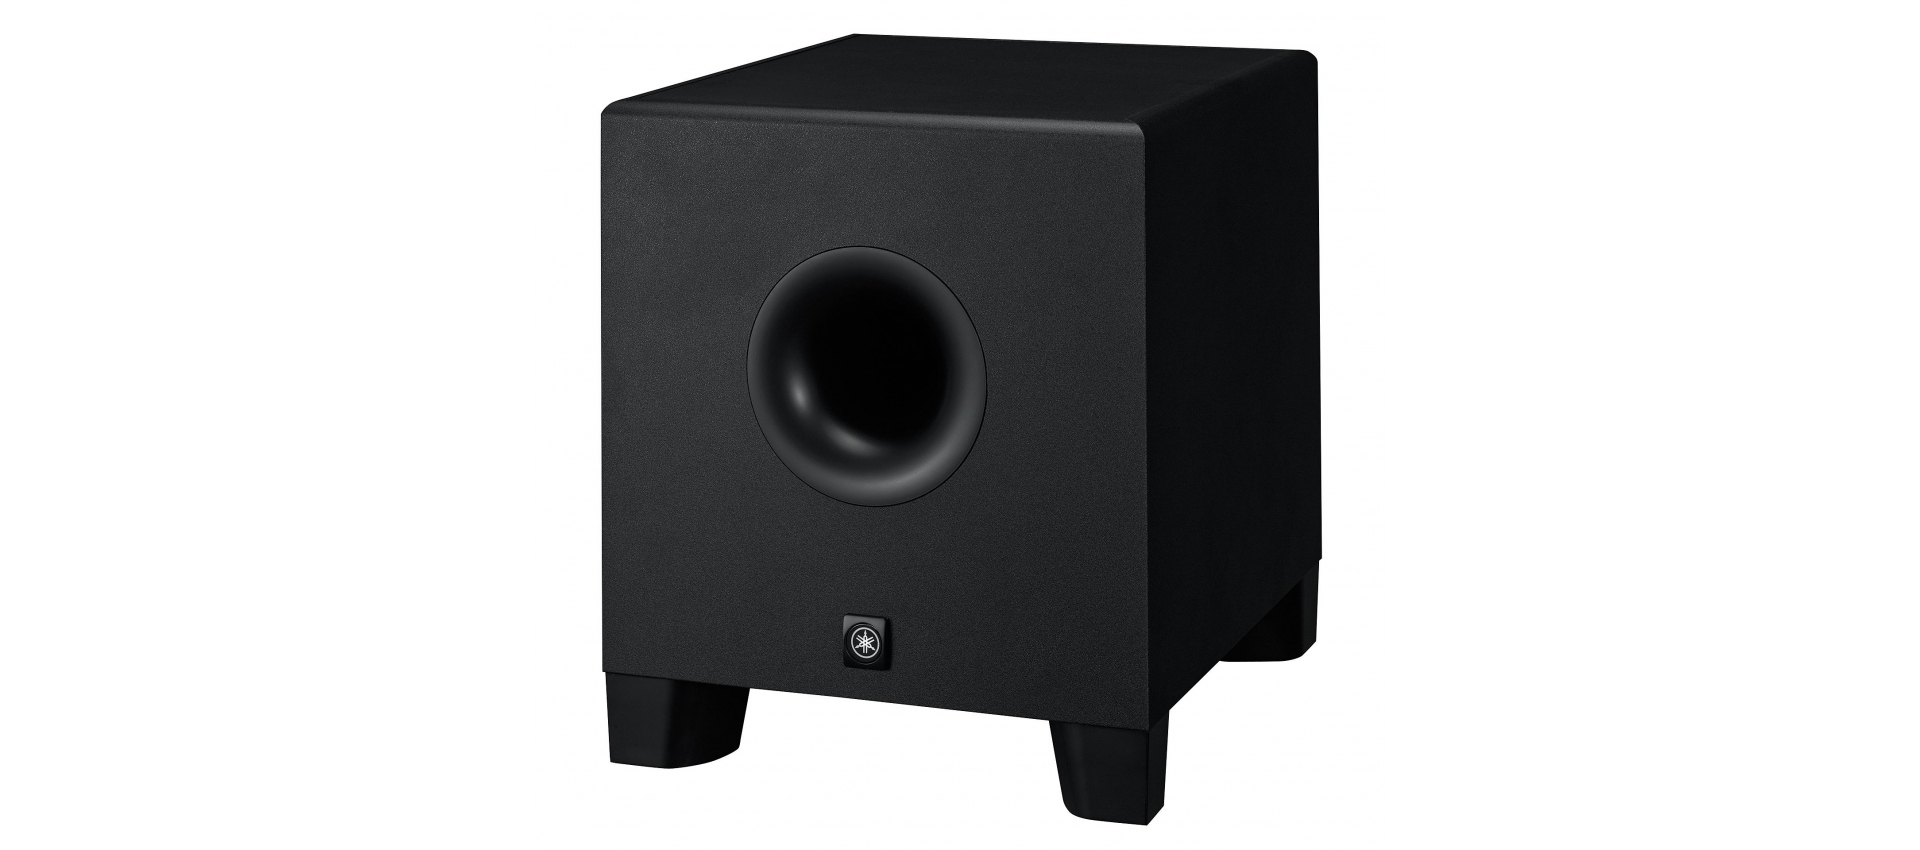 Global Surplus Waterville Liquidation S 300071 besides 11362 Yamaha Hs8s Studio Active Subwoofer moreover Rinehart 25 Hi Flo Performance Baffles Rr100 0111 furthermore Sentinal One Way Pozi Drive Security Screws 216 3 5 Mm 11362 further Omega Environmental Technologies 22 11362. on hardware 11362